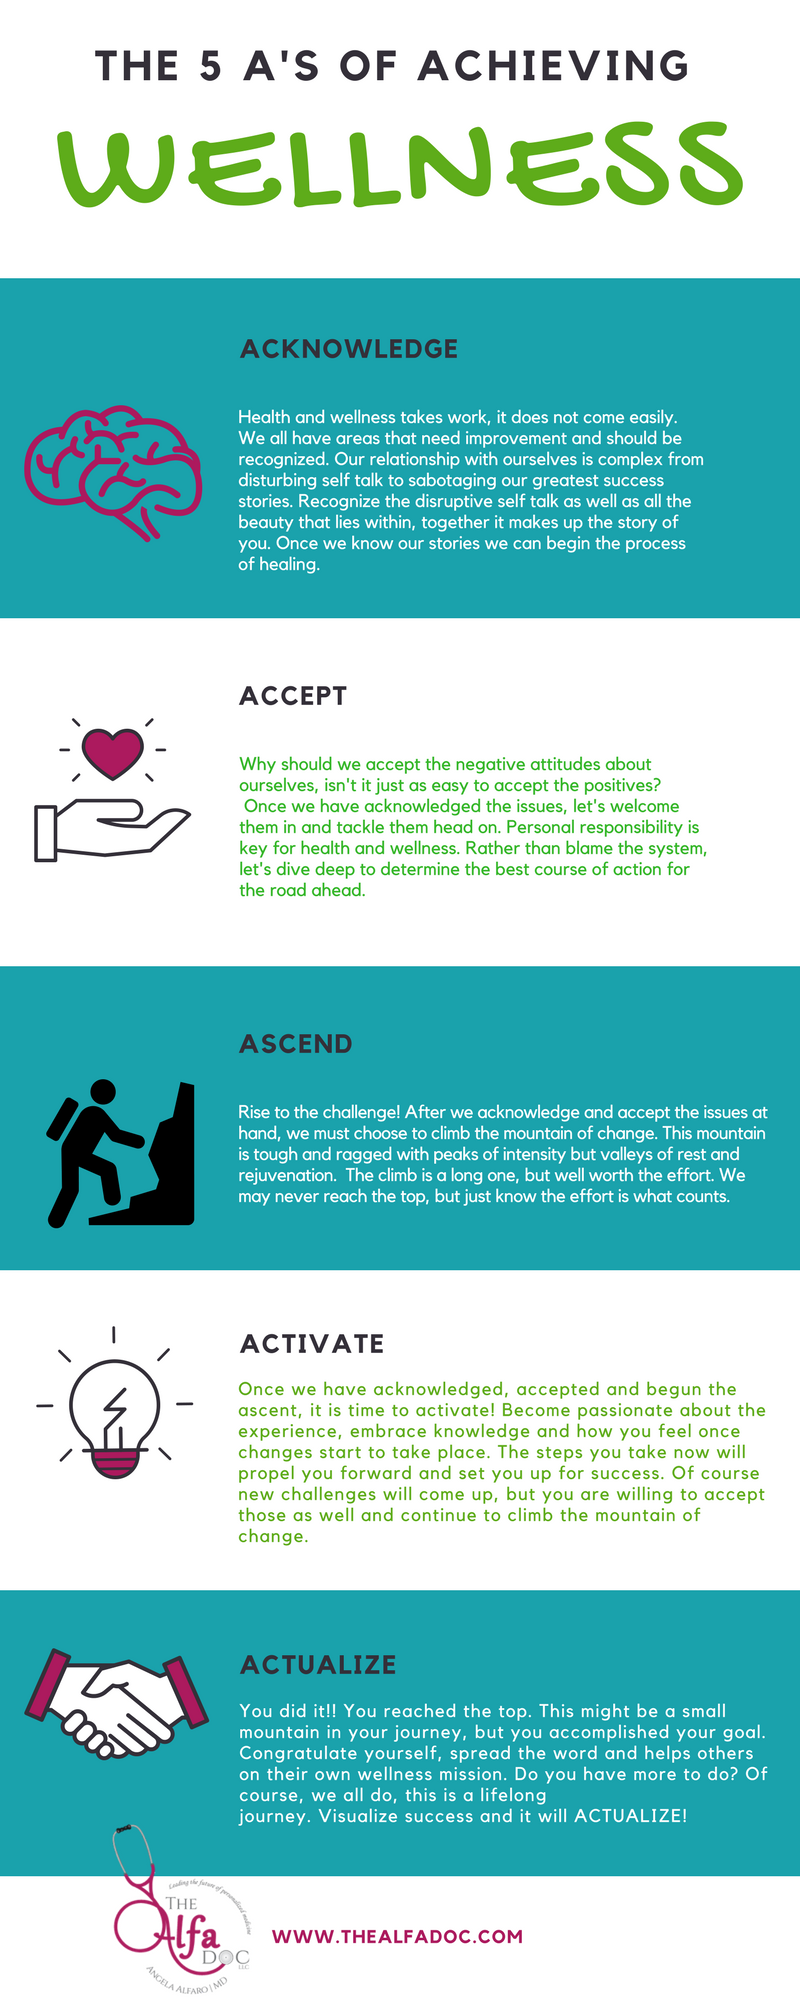 The 5 A's of Achieving Wellness!